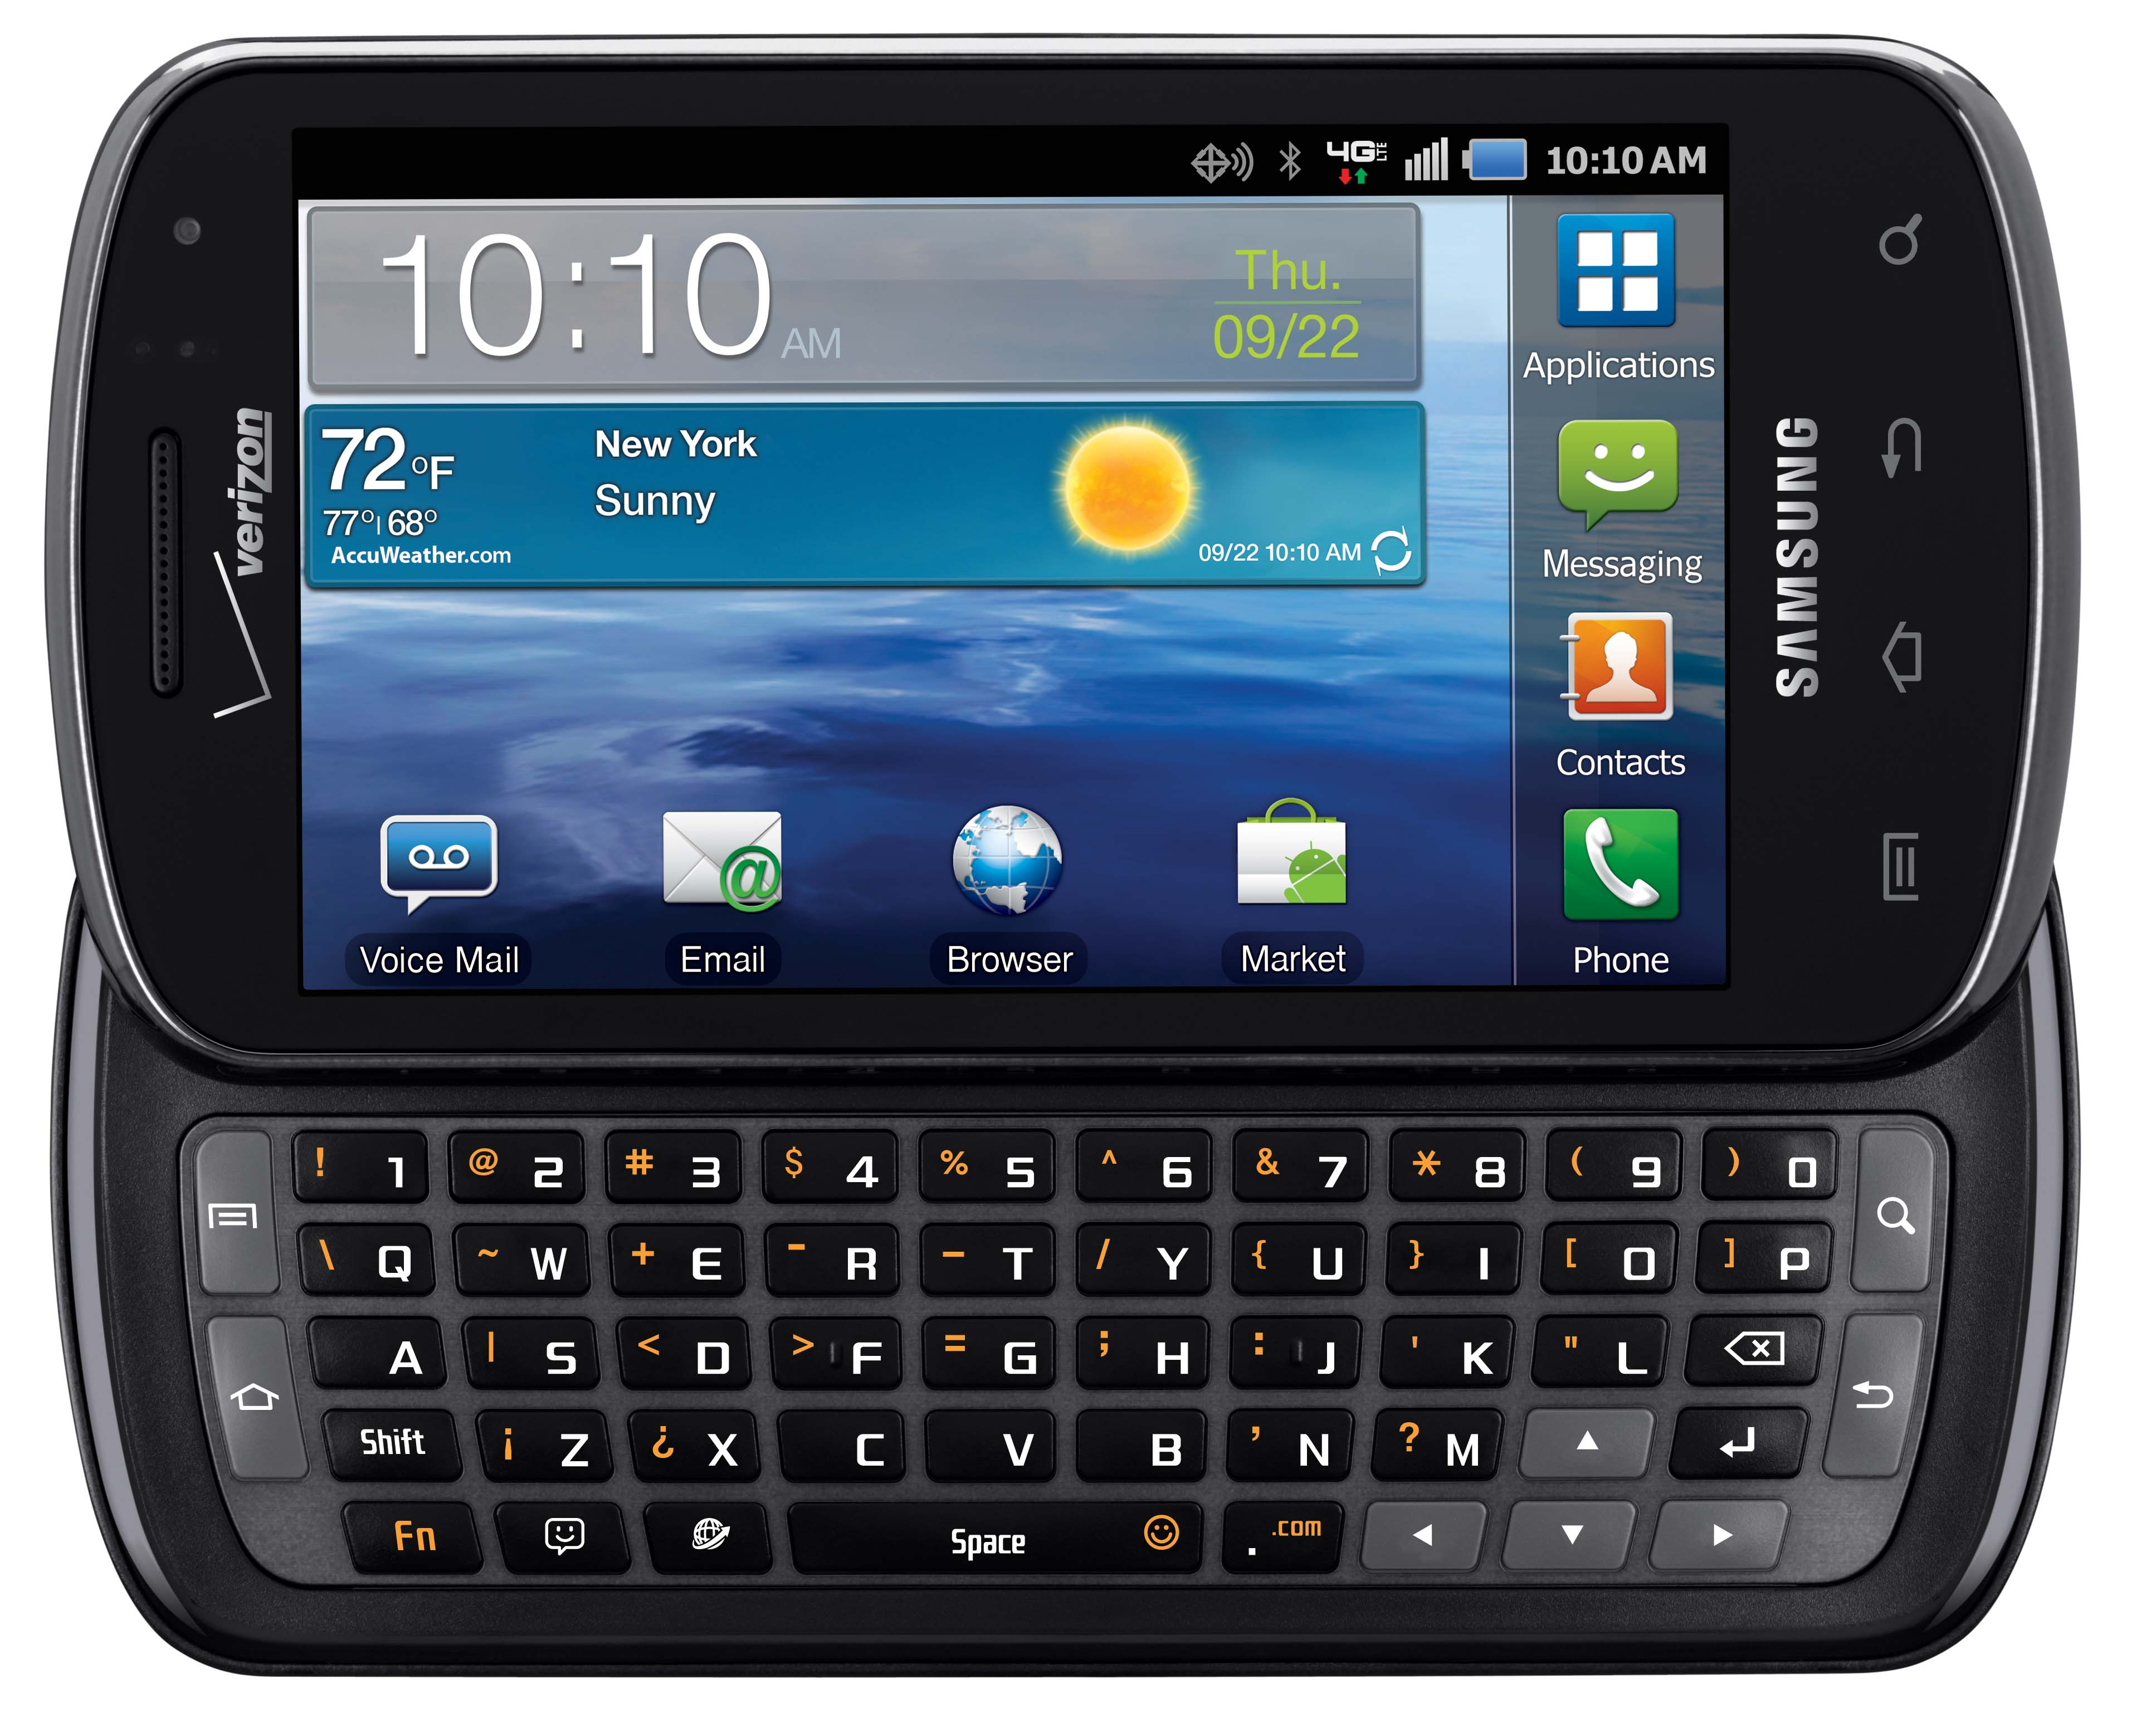 Camera Samsung Qwerty Android Phone samsung stratosphere lte and qwerty for 149 updated